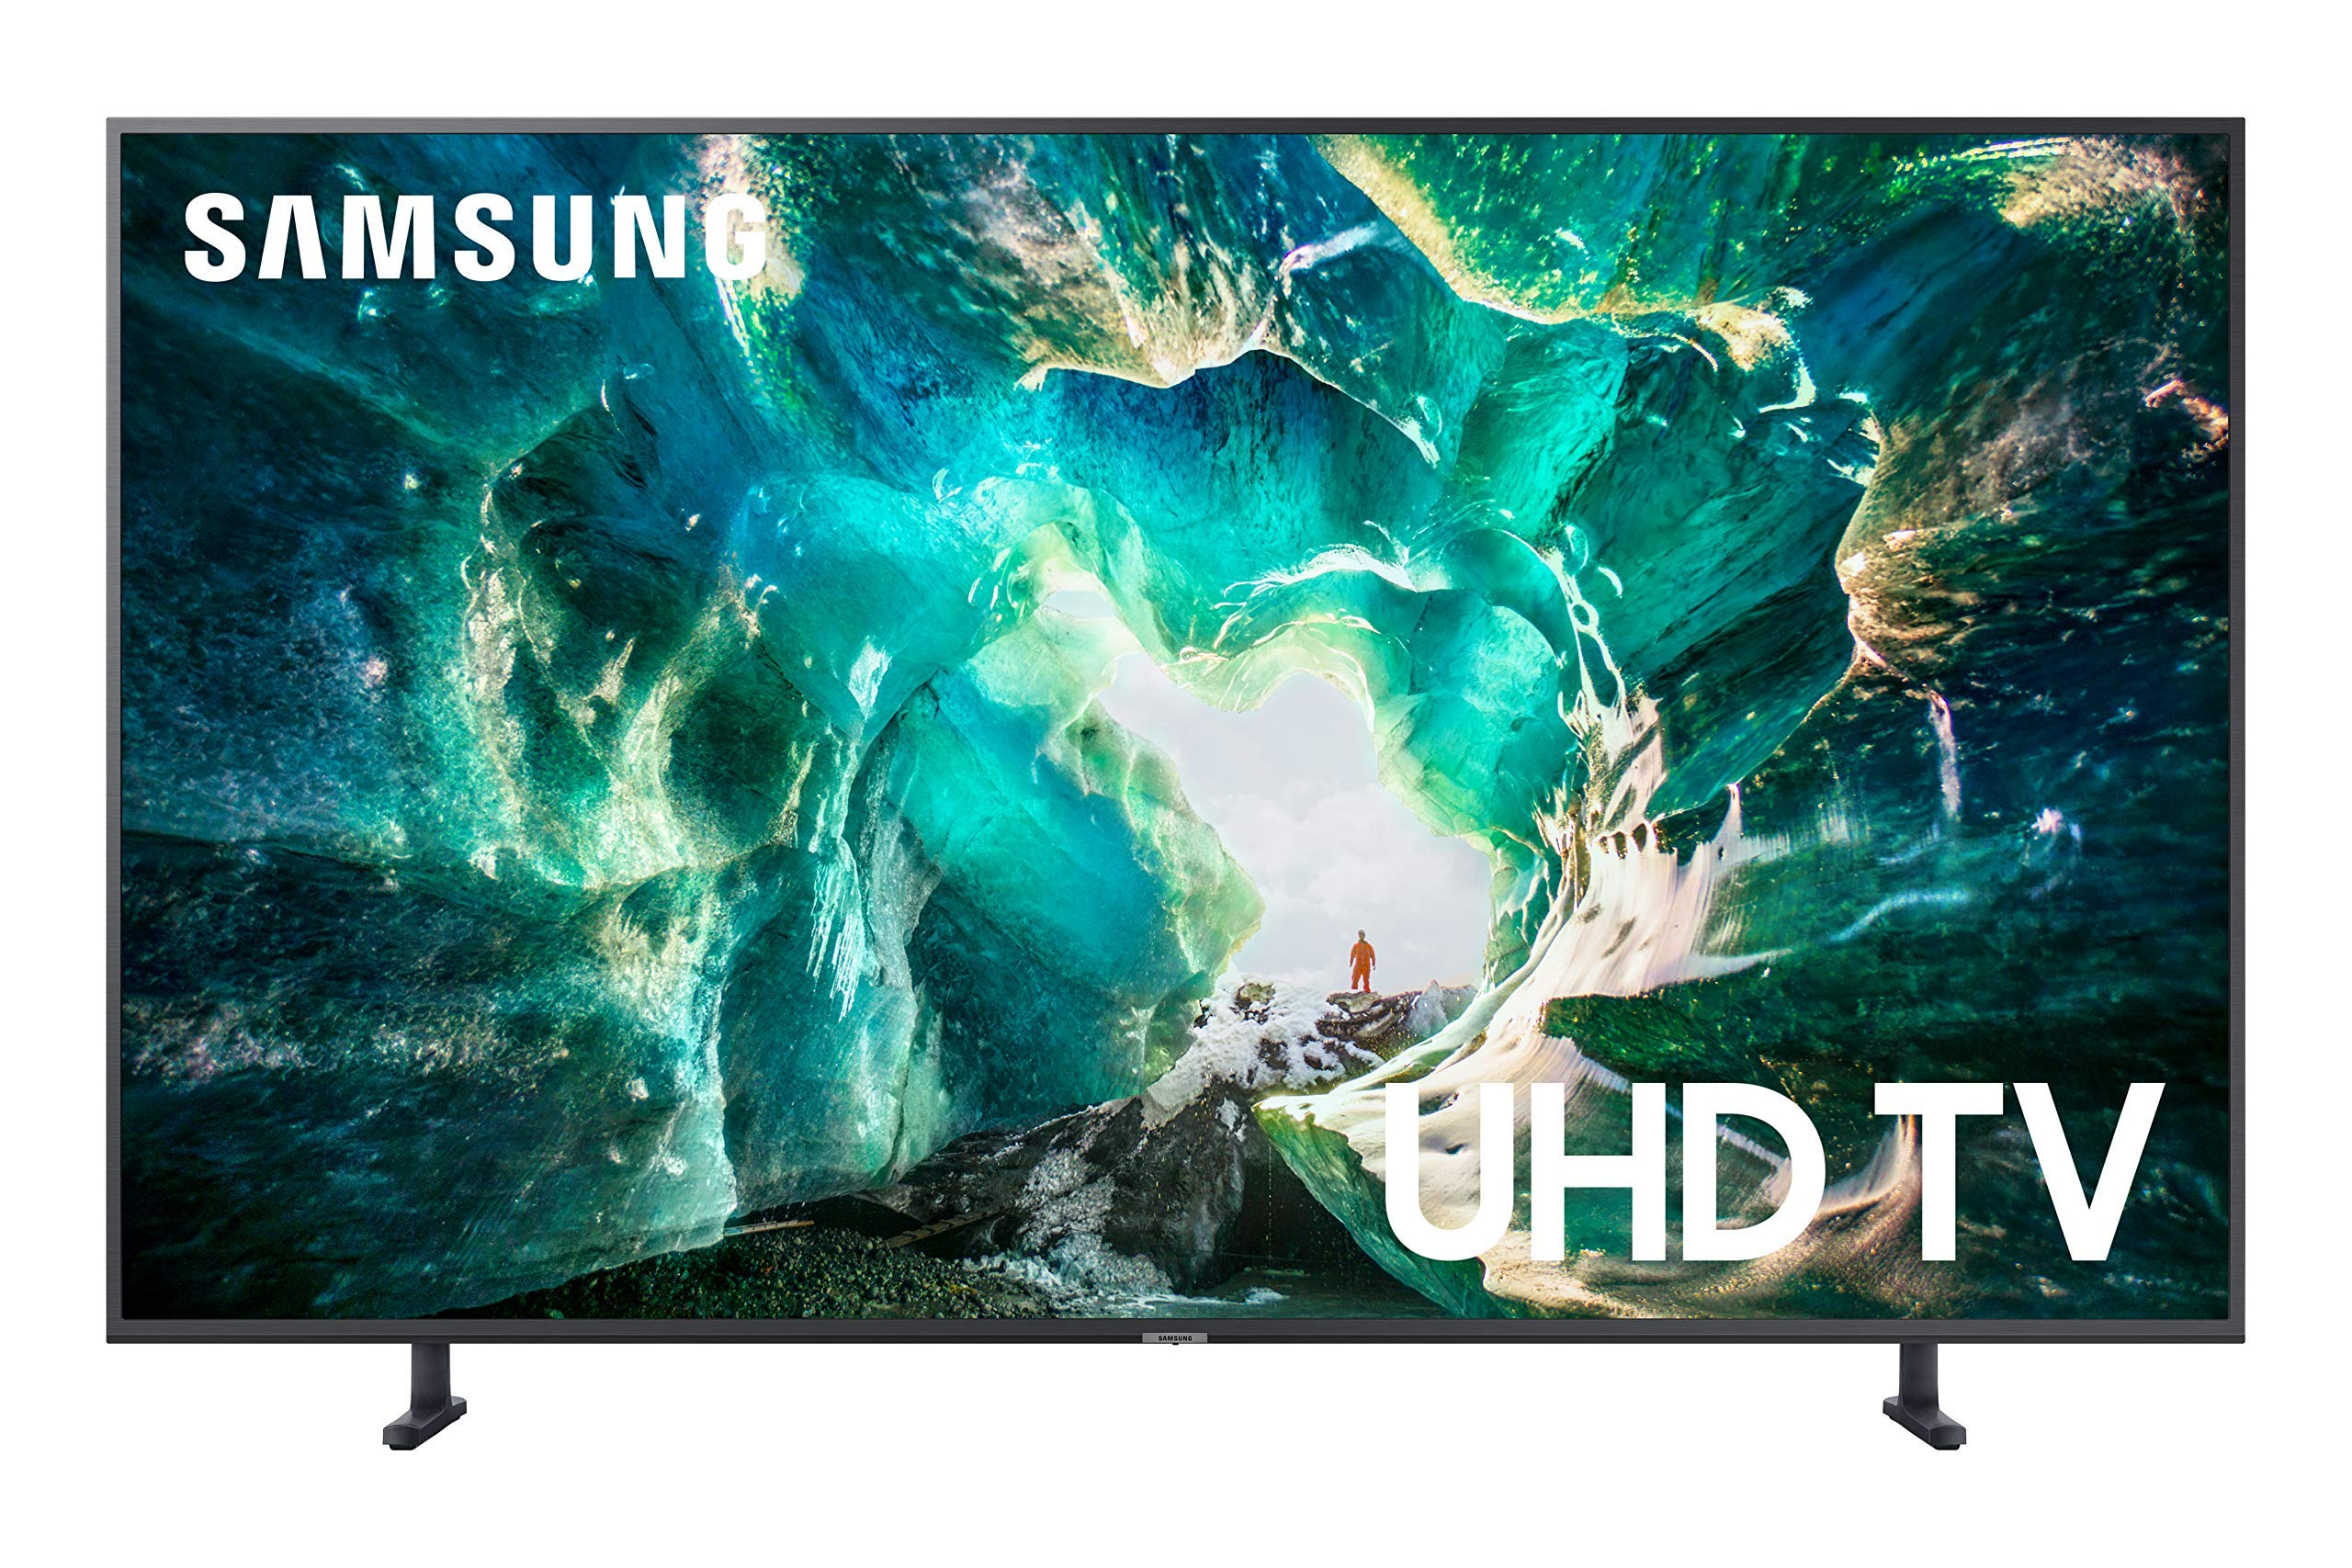 Samsung 4K UHD 8 Series Smart TV 2019 (Premium): Amazon.es: Electrónica